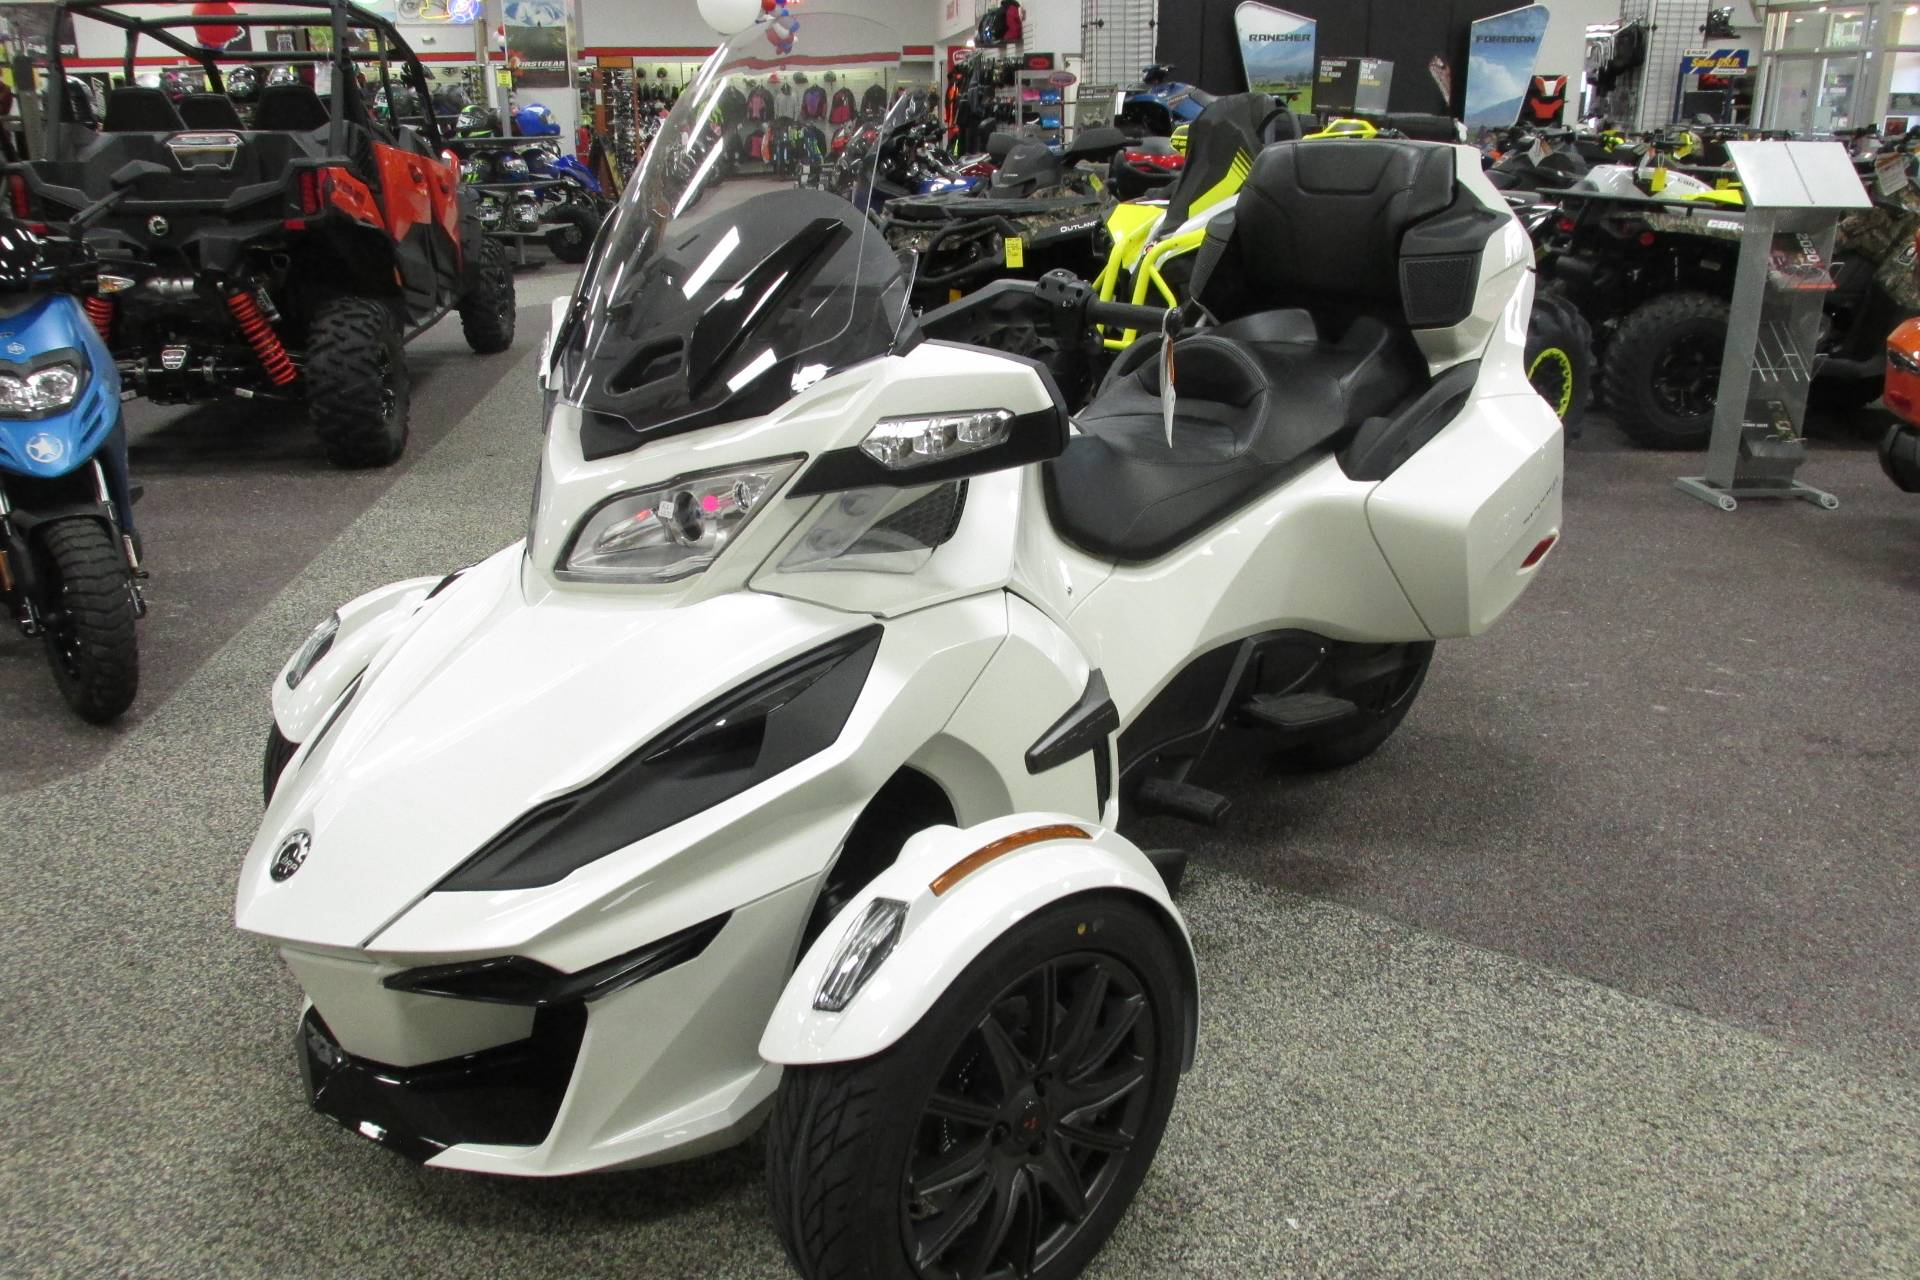 2019 Can-Am SPYDER RT SE6 in Springfield, Ohio - Photo 4